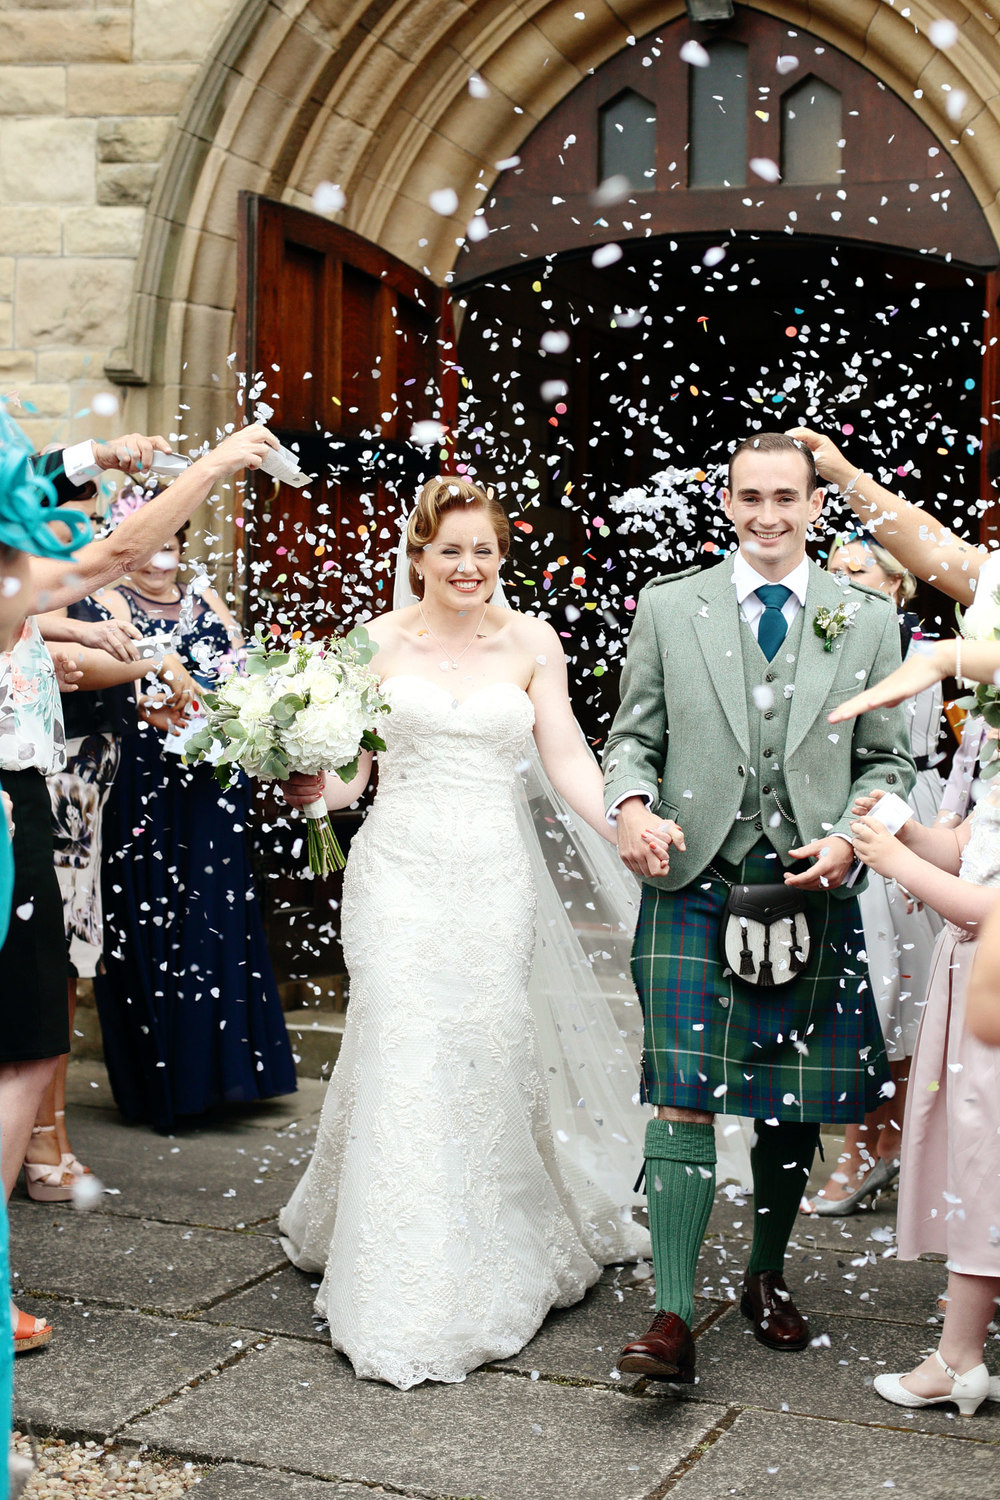 Confetti photo, Glasgow wedding photographer